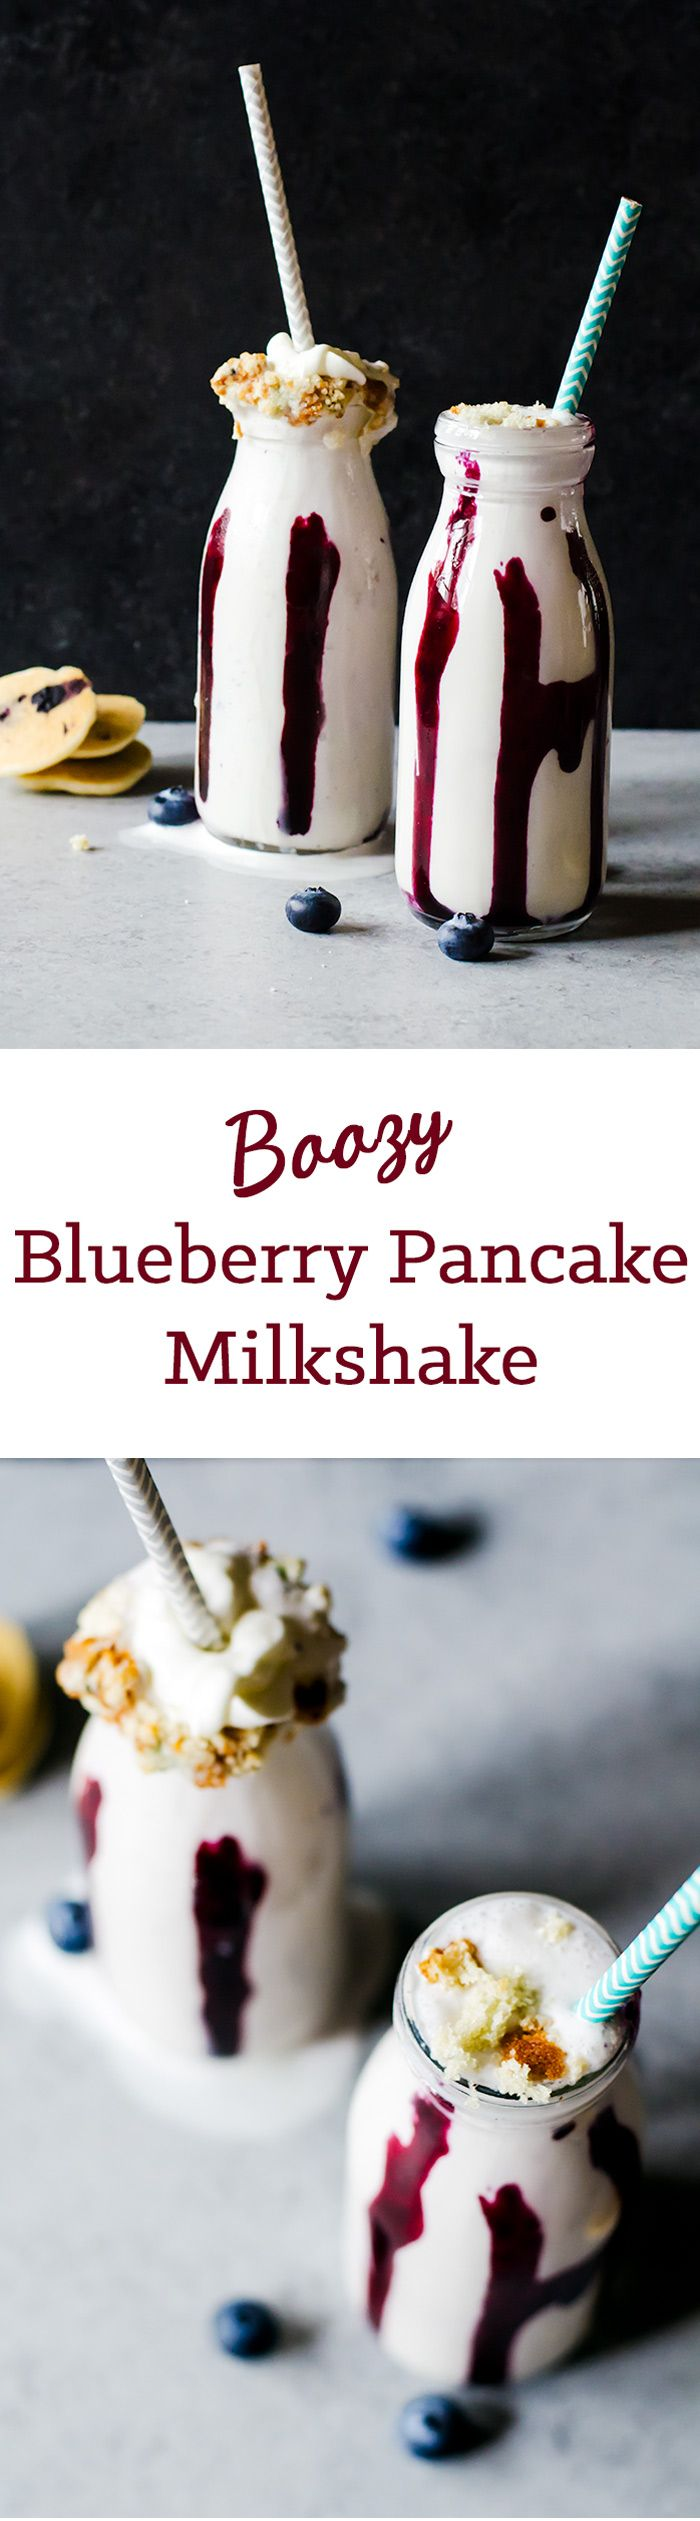 Boozy Blueberry Pancake Milkshake - Tastes exactly like a blueberry pancake. Now have breakfast for dessert and have a little fun, too!